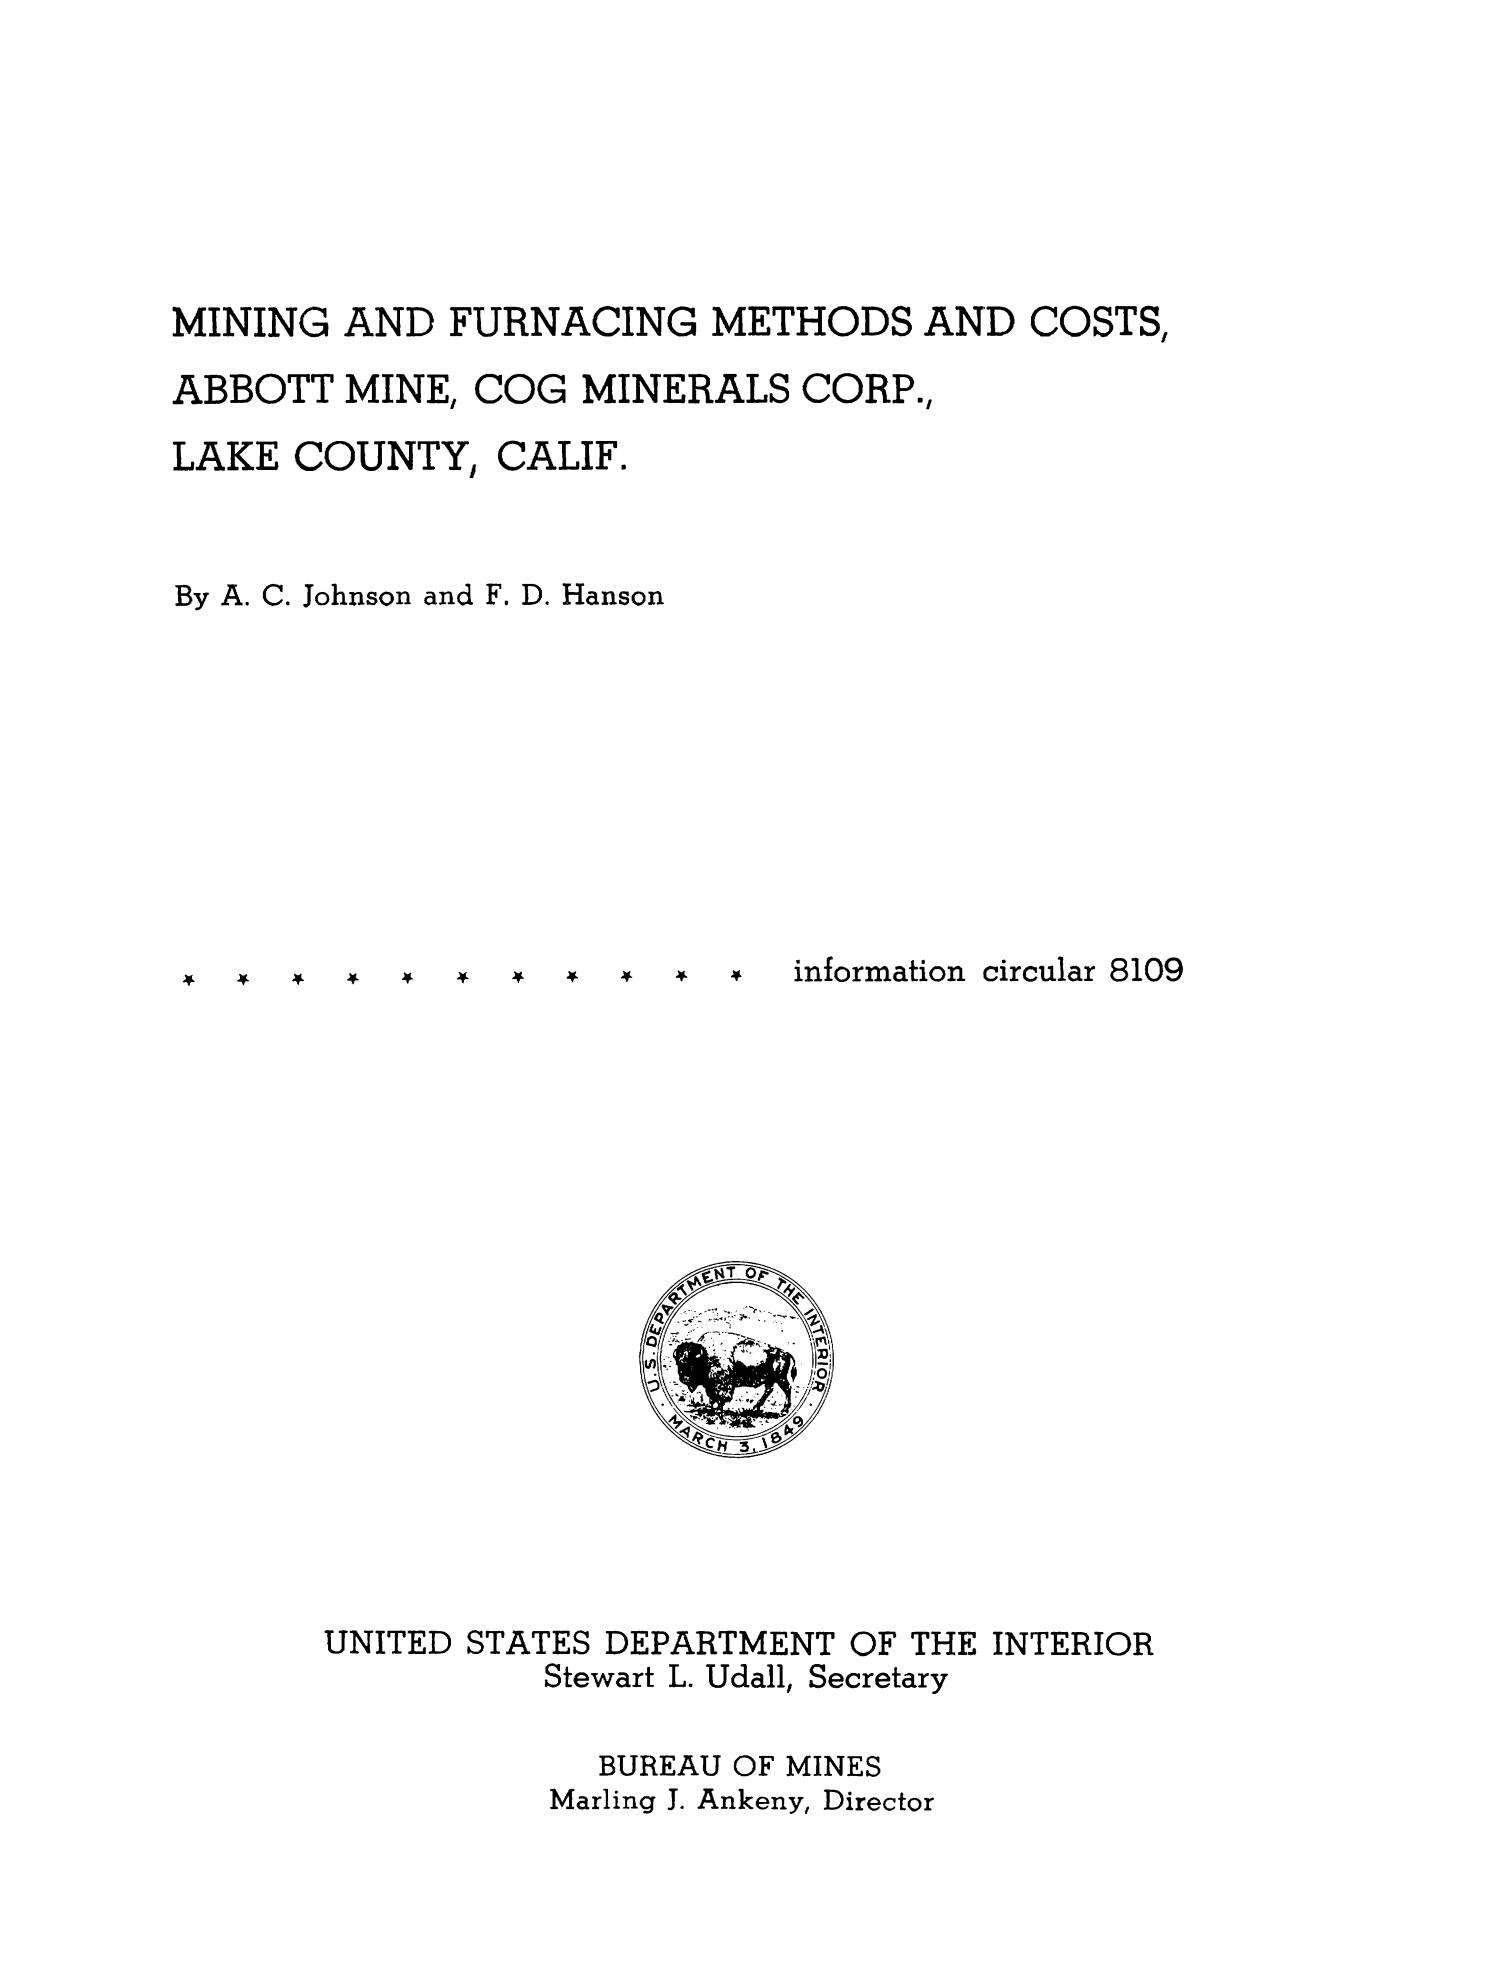 Mining and Furnacing Methods and Costs, Abbott Mine, Cog Minerals Corporation, Lake County, California                                                                                                      Title Page